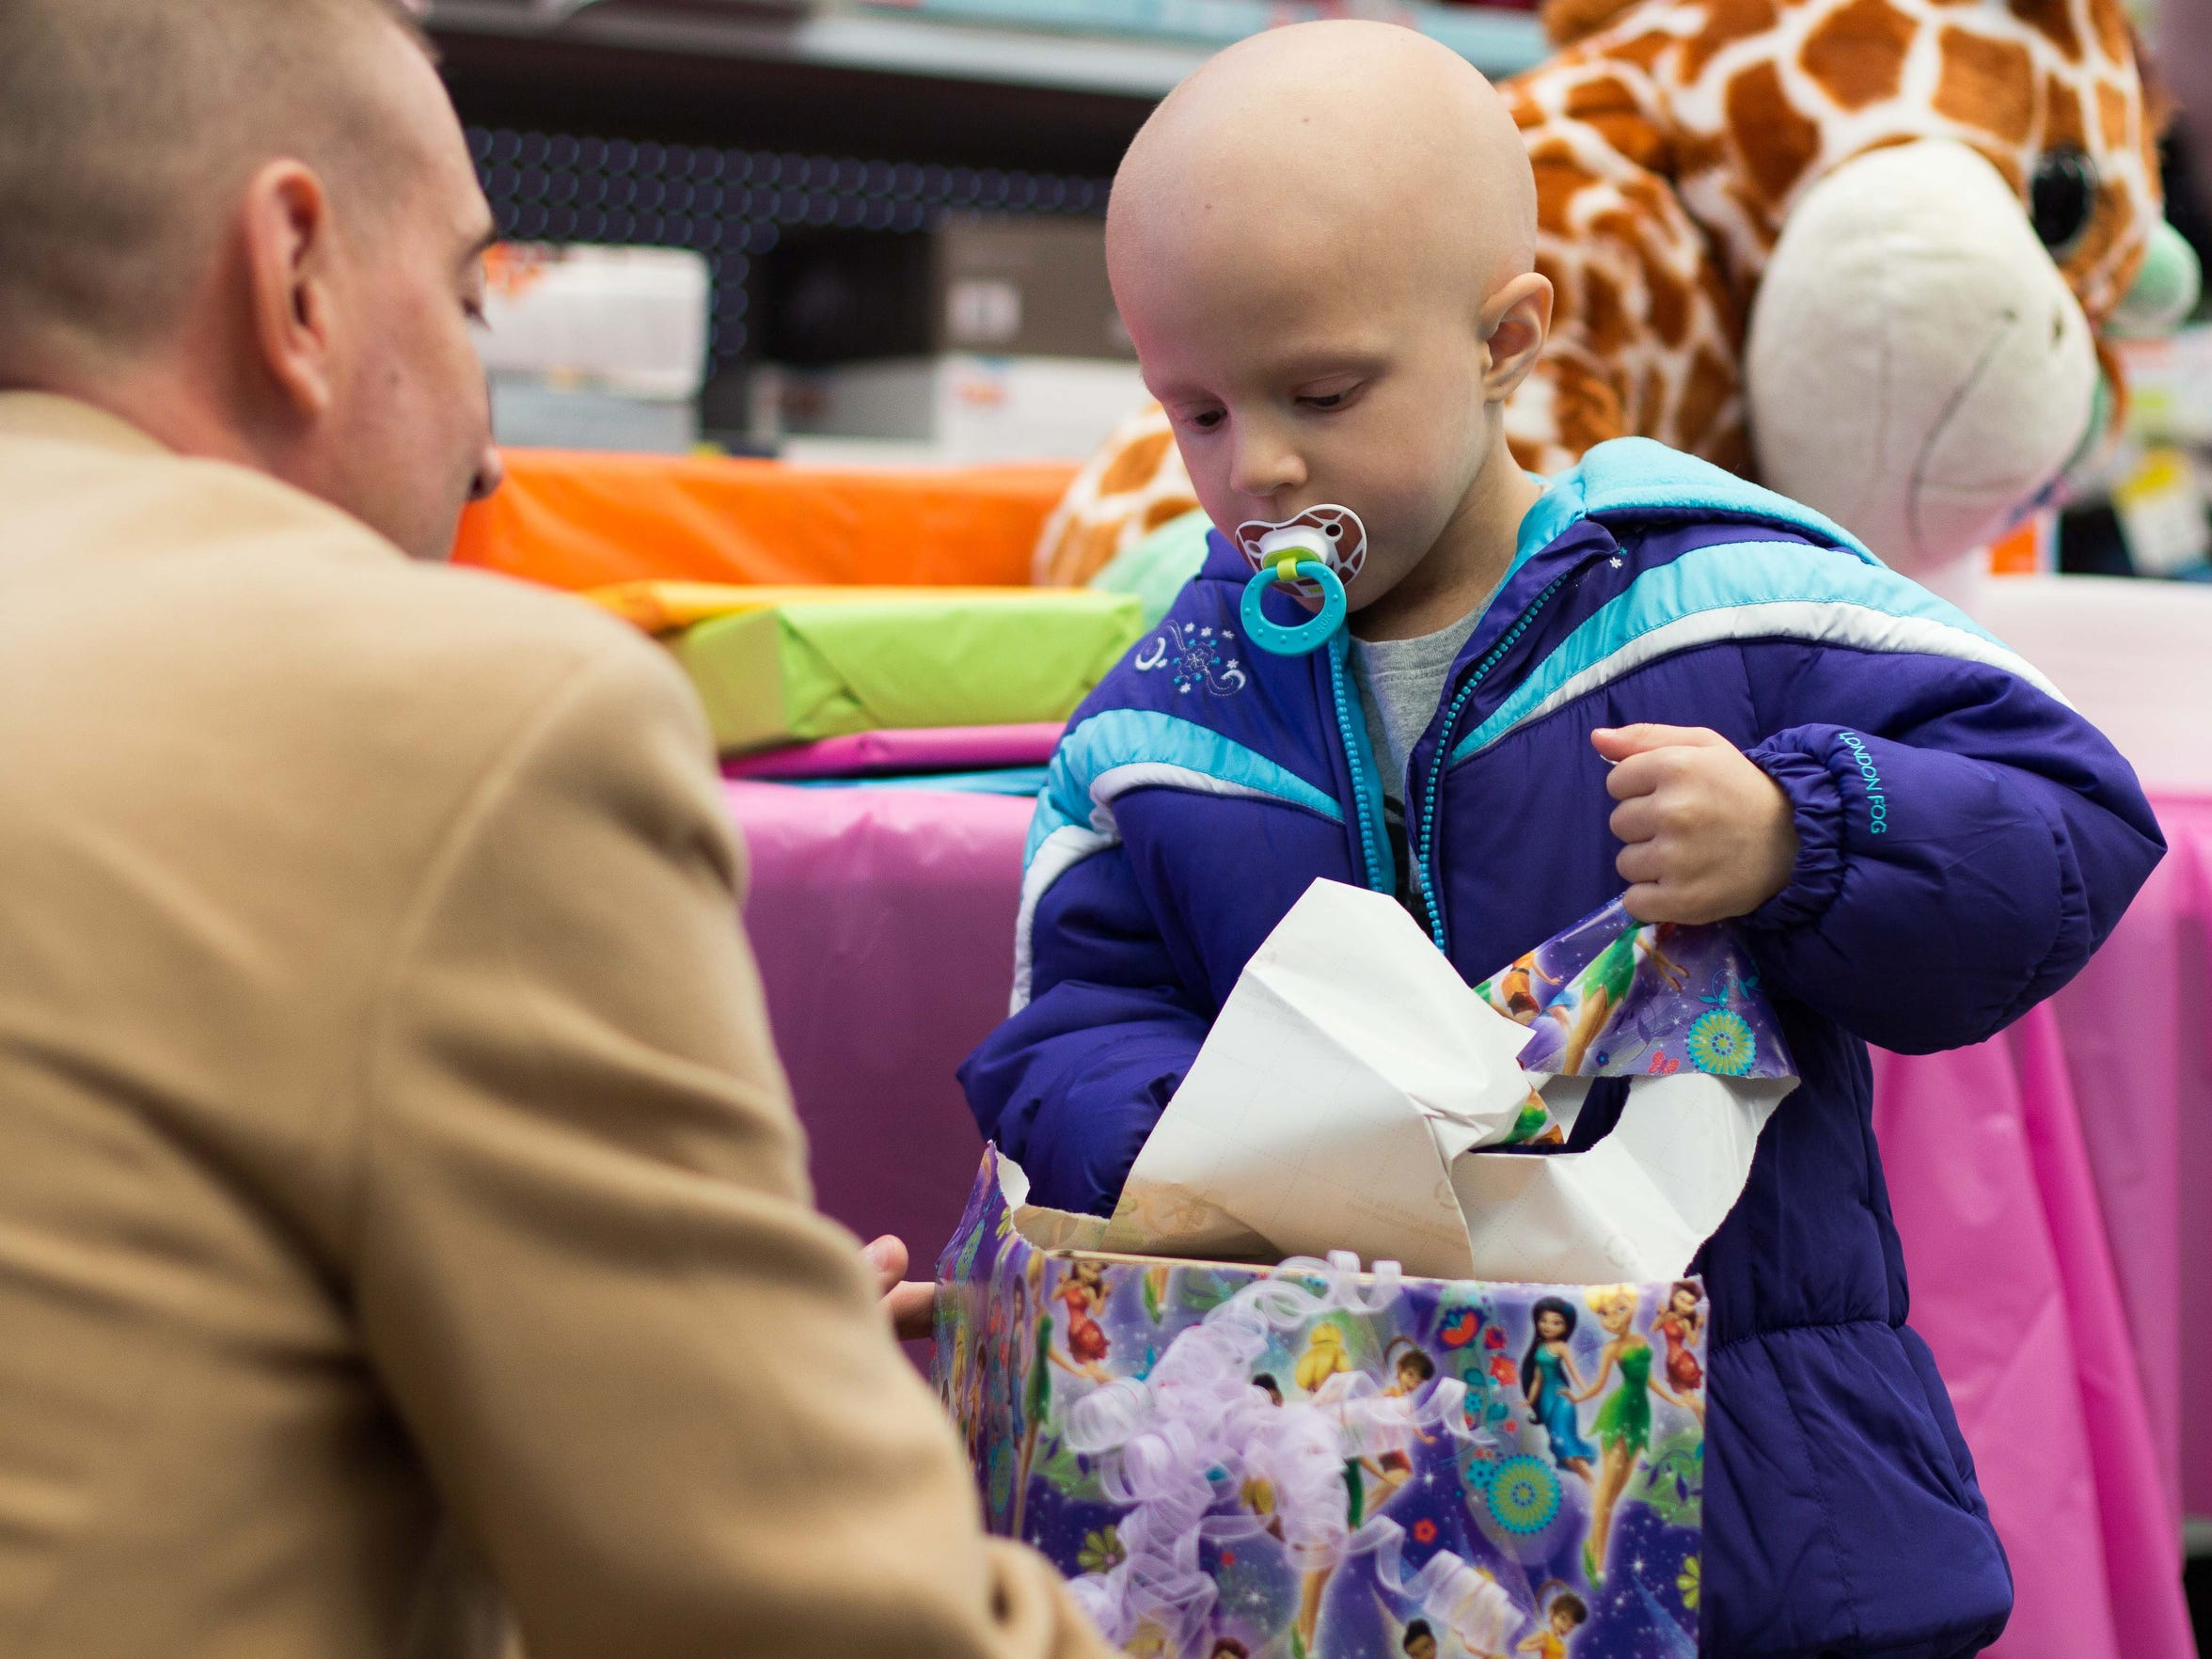 In this 2014 photo, Nattaly Brown, then 4, opens gifts